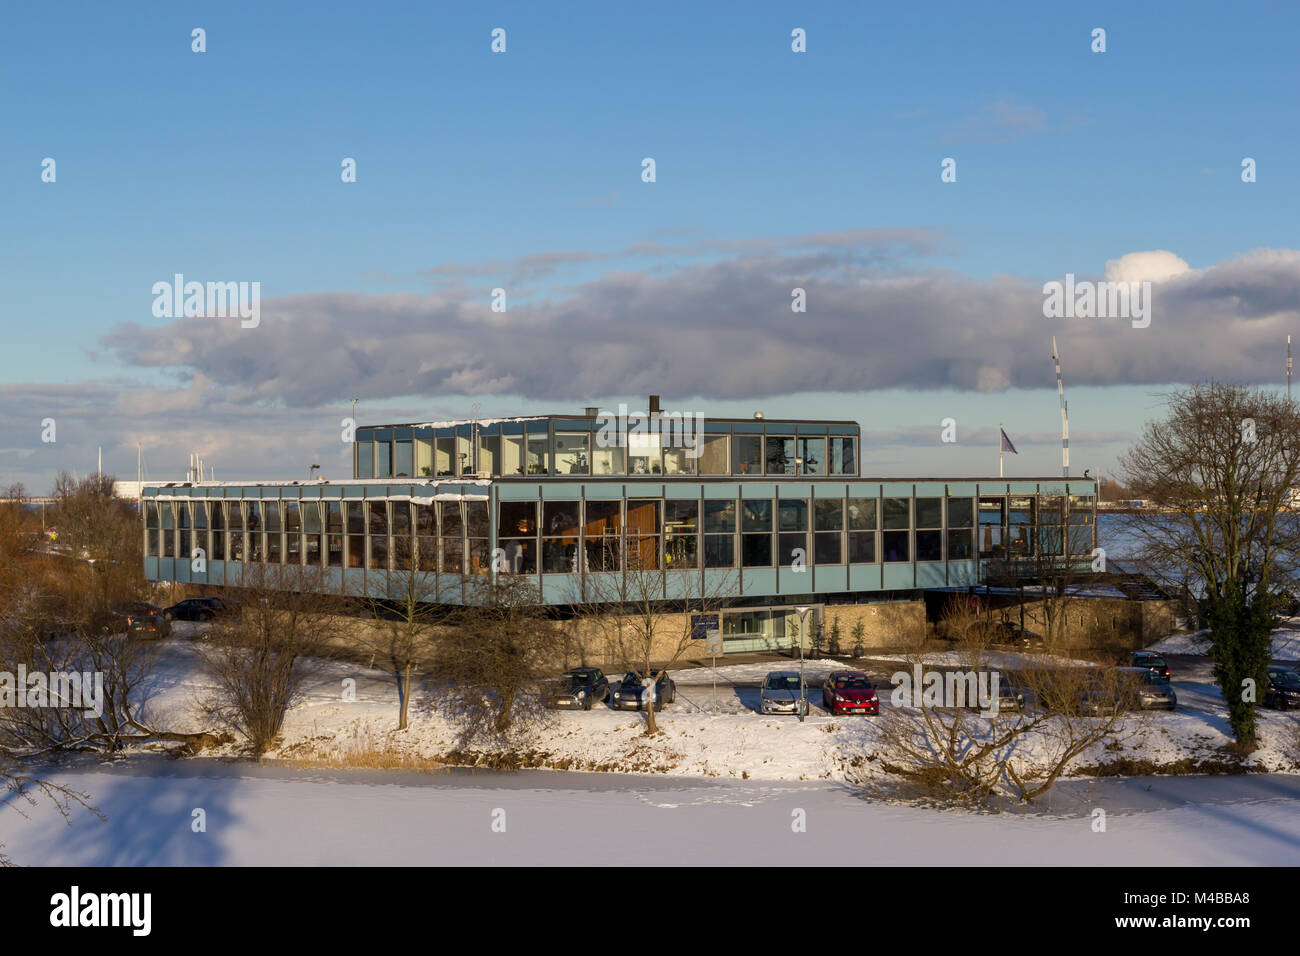 The Langelinie Pavilion at Kastellet, winter; Copenhagen, Denmark Stock Photo